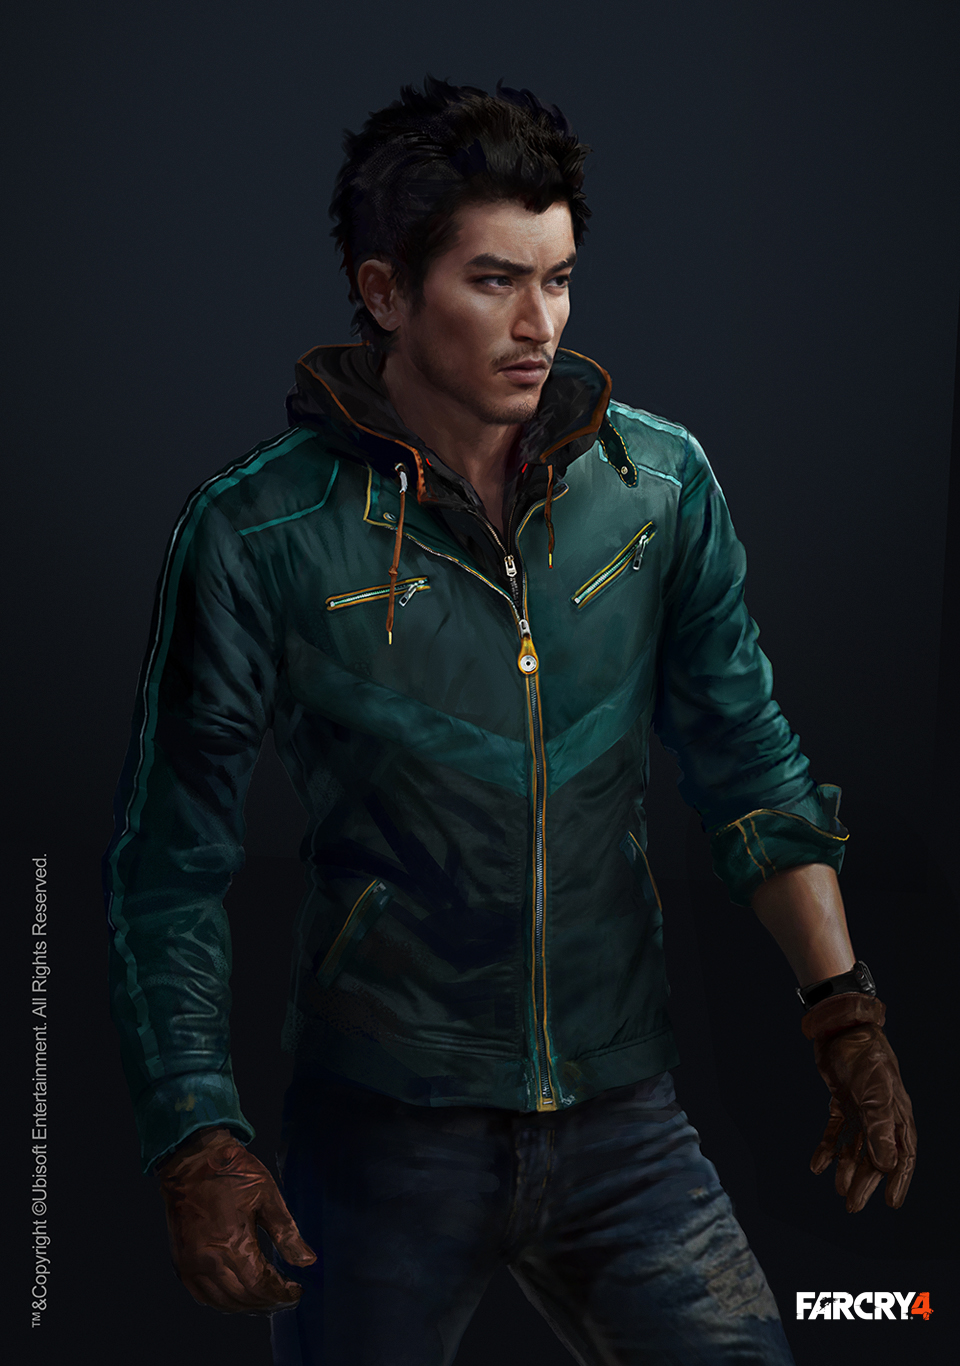 FC4_AJAY_Portrait_Final.jpg